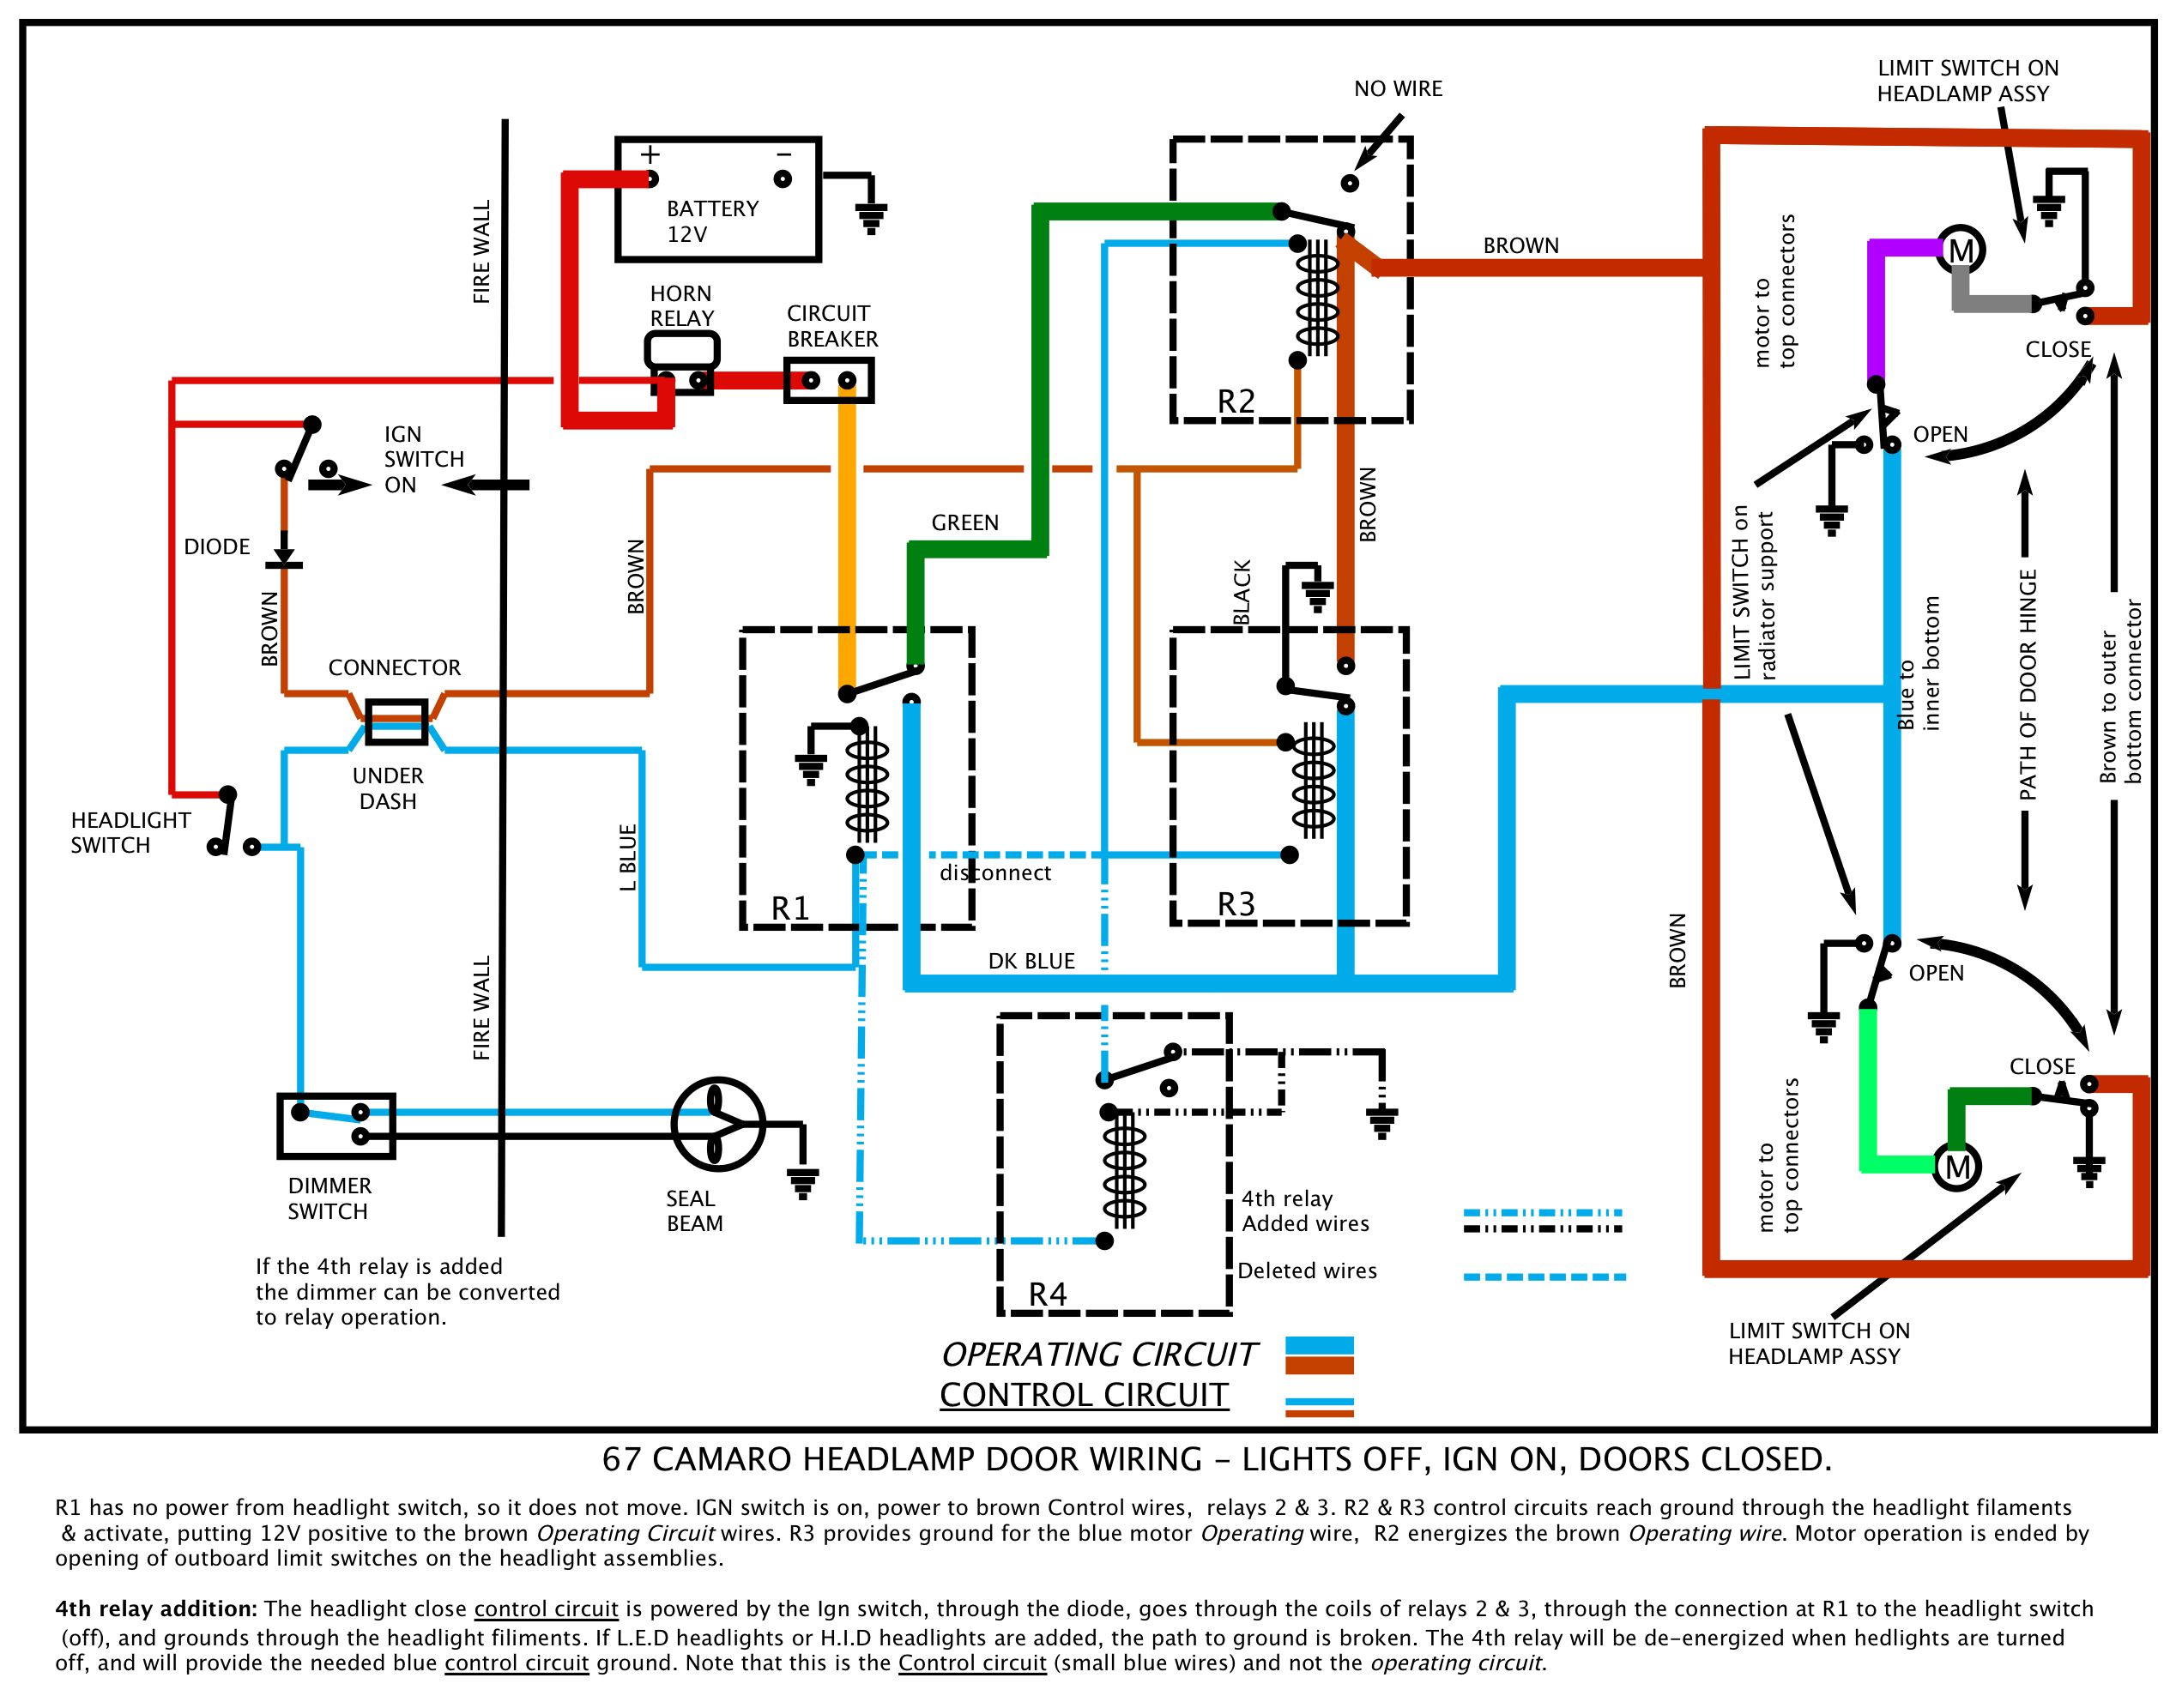 1967 camaro headlight switch wiring diagram 115stromoekode